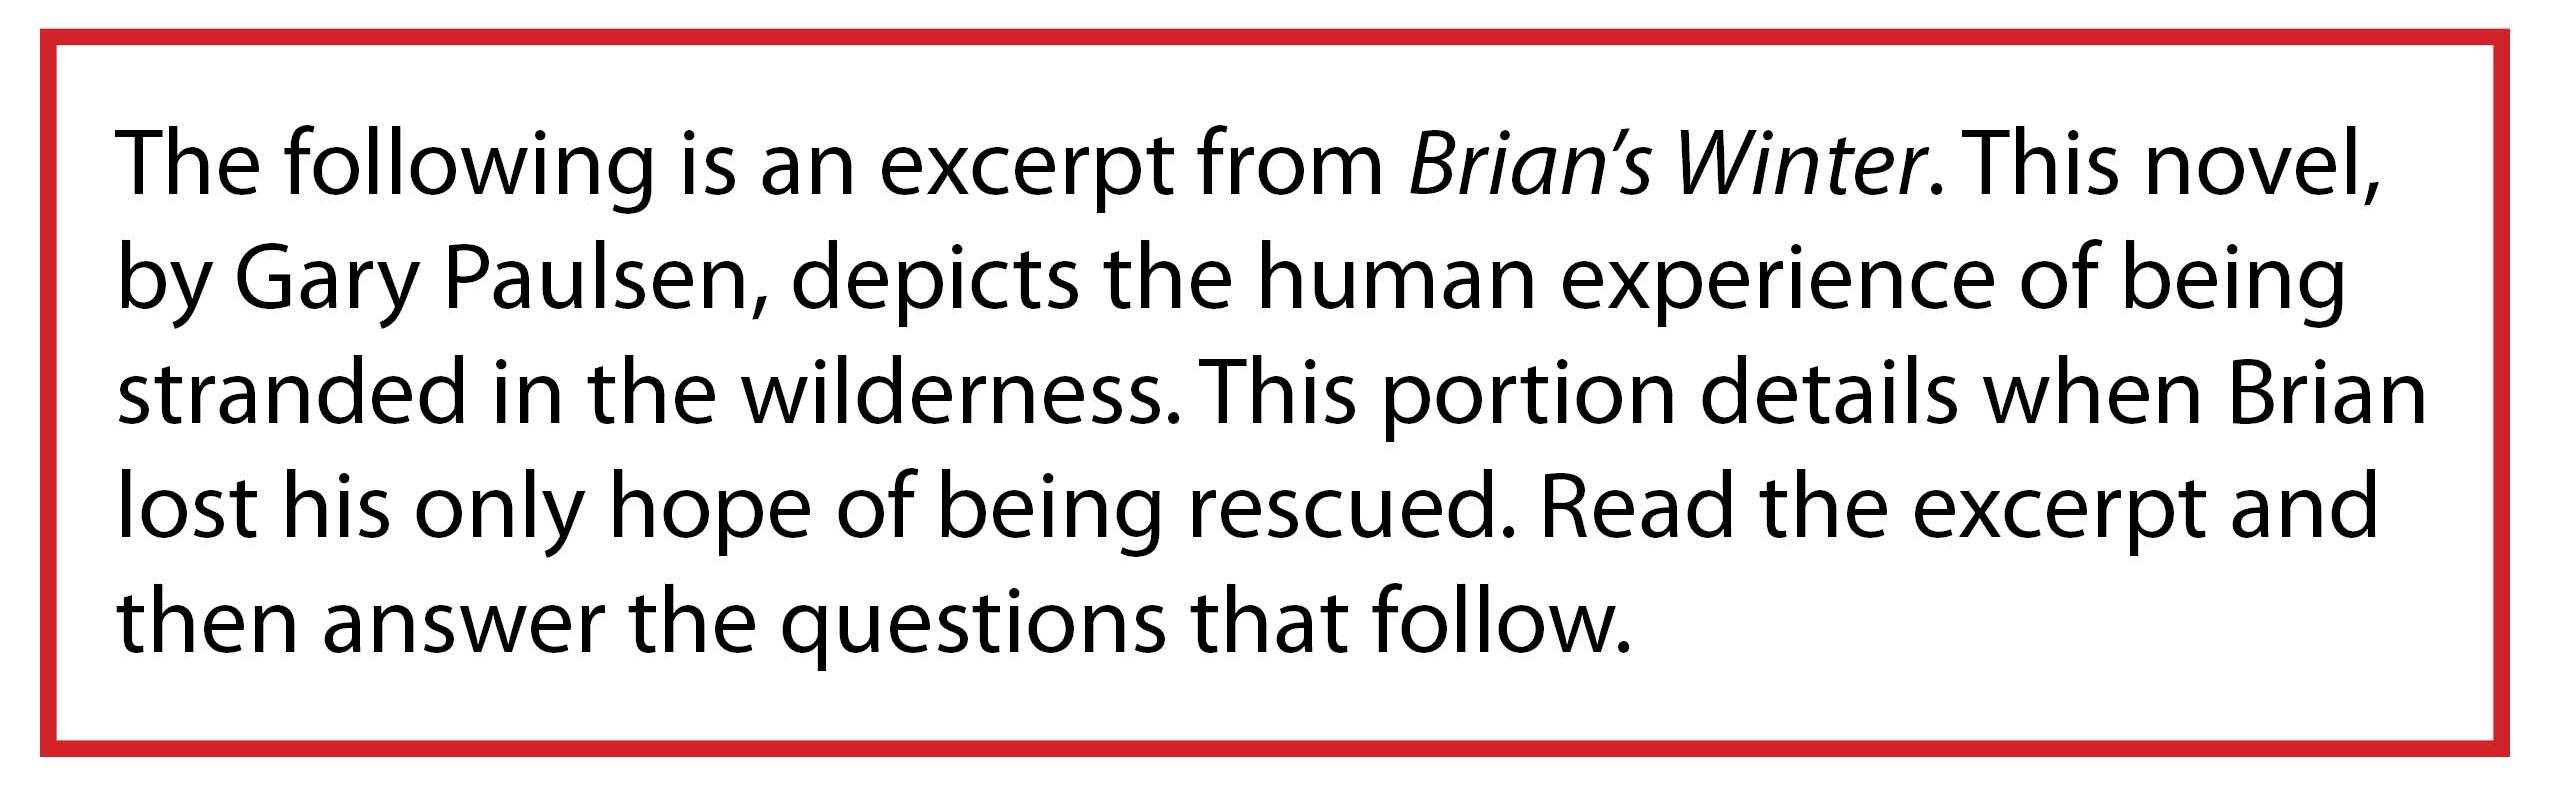 Prompt re: Excerpt from Brian's Winter